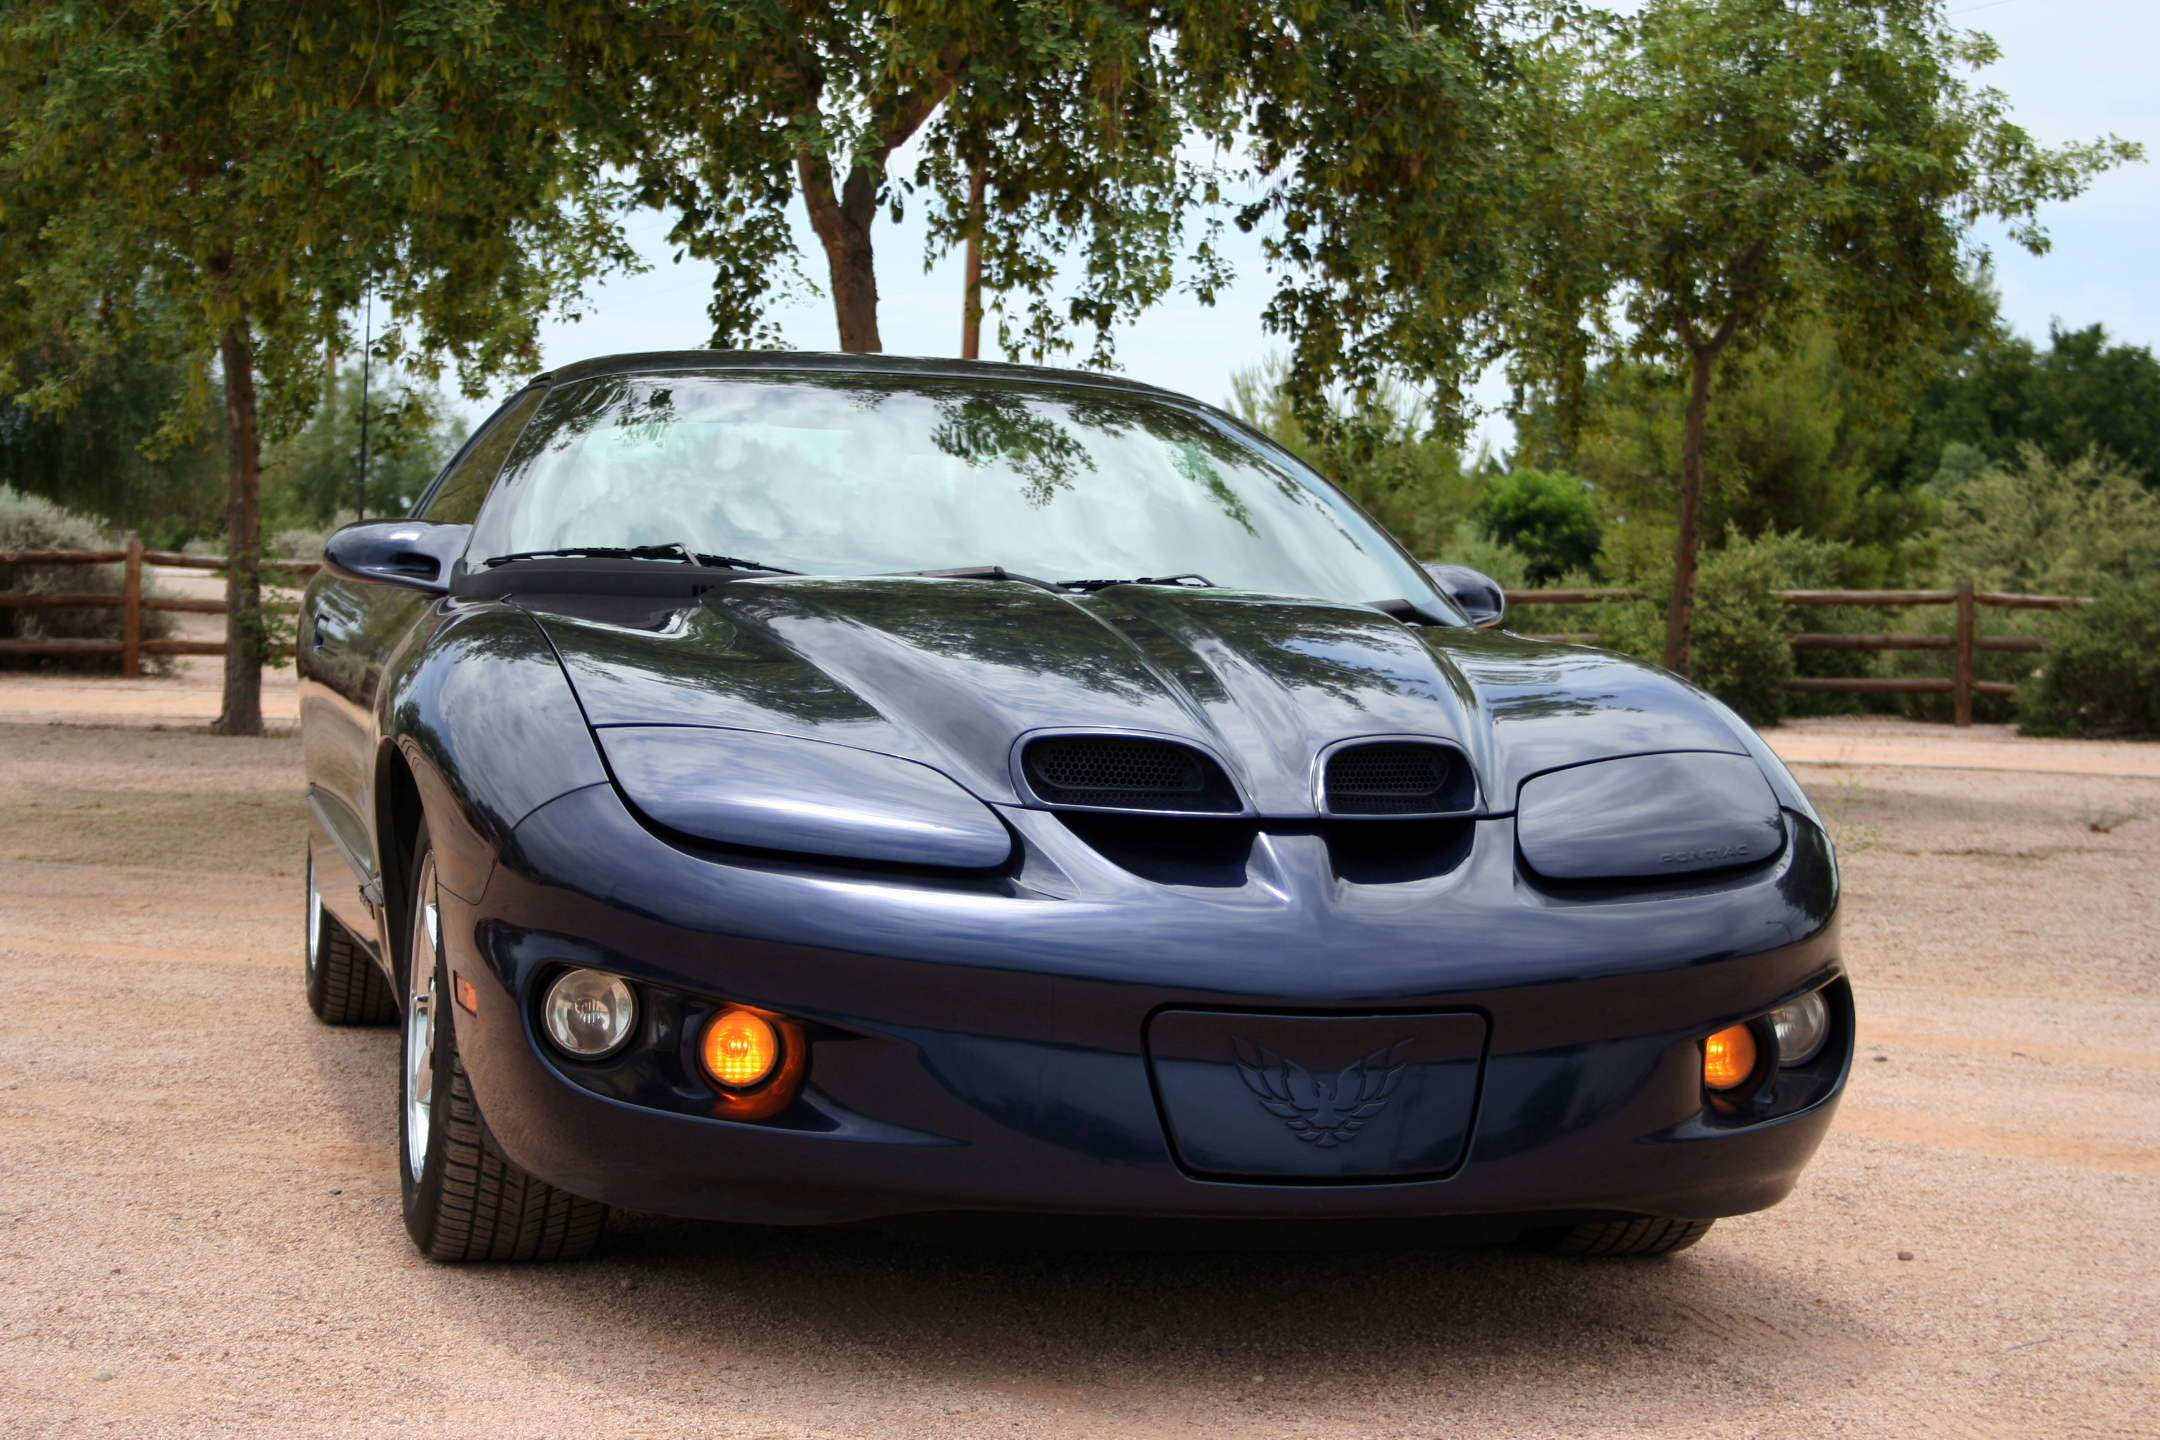 Electricblue2 2002 Pontiac Firebird Specs Photos Modification Info Wiring For Monsoon Stereo System 19149370